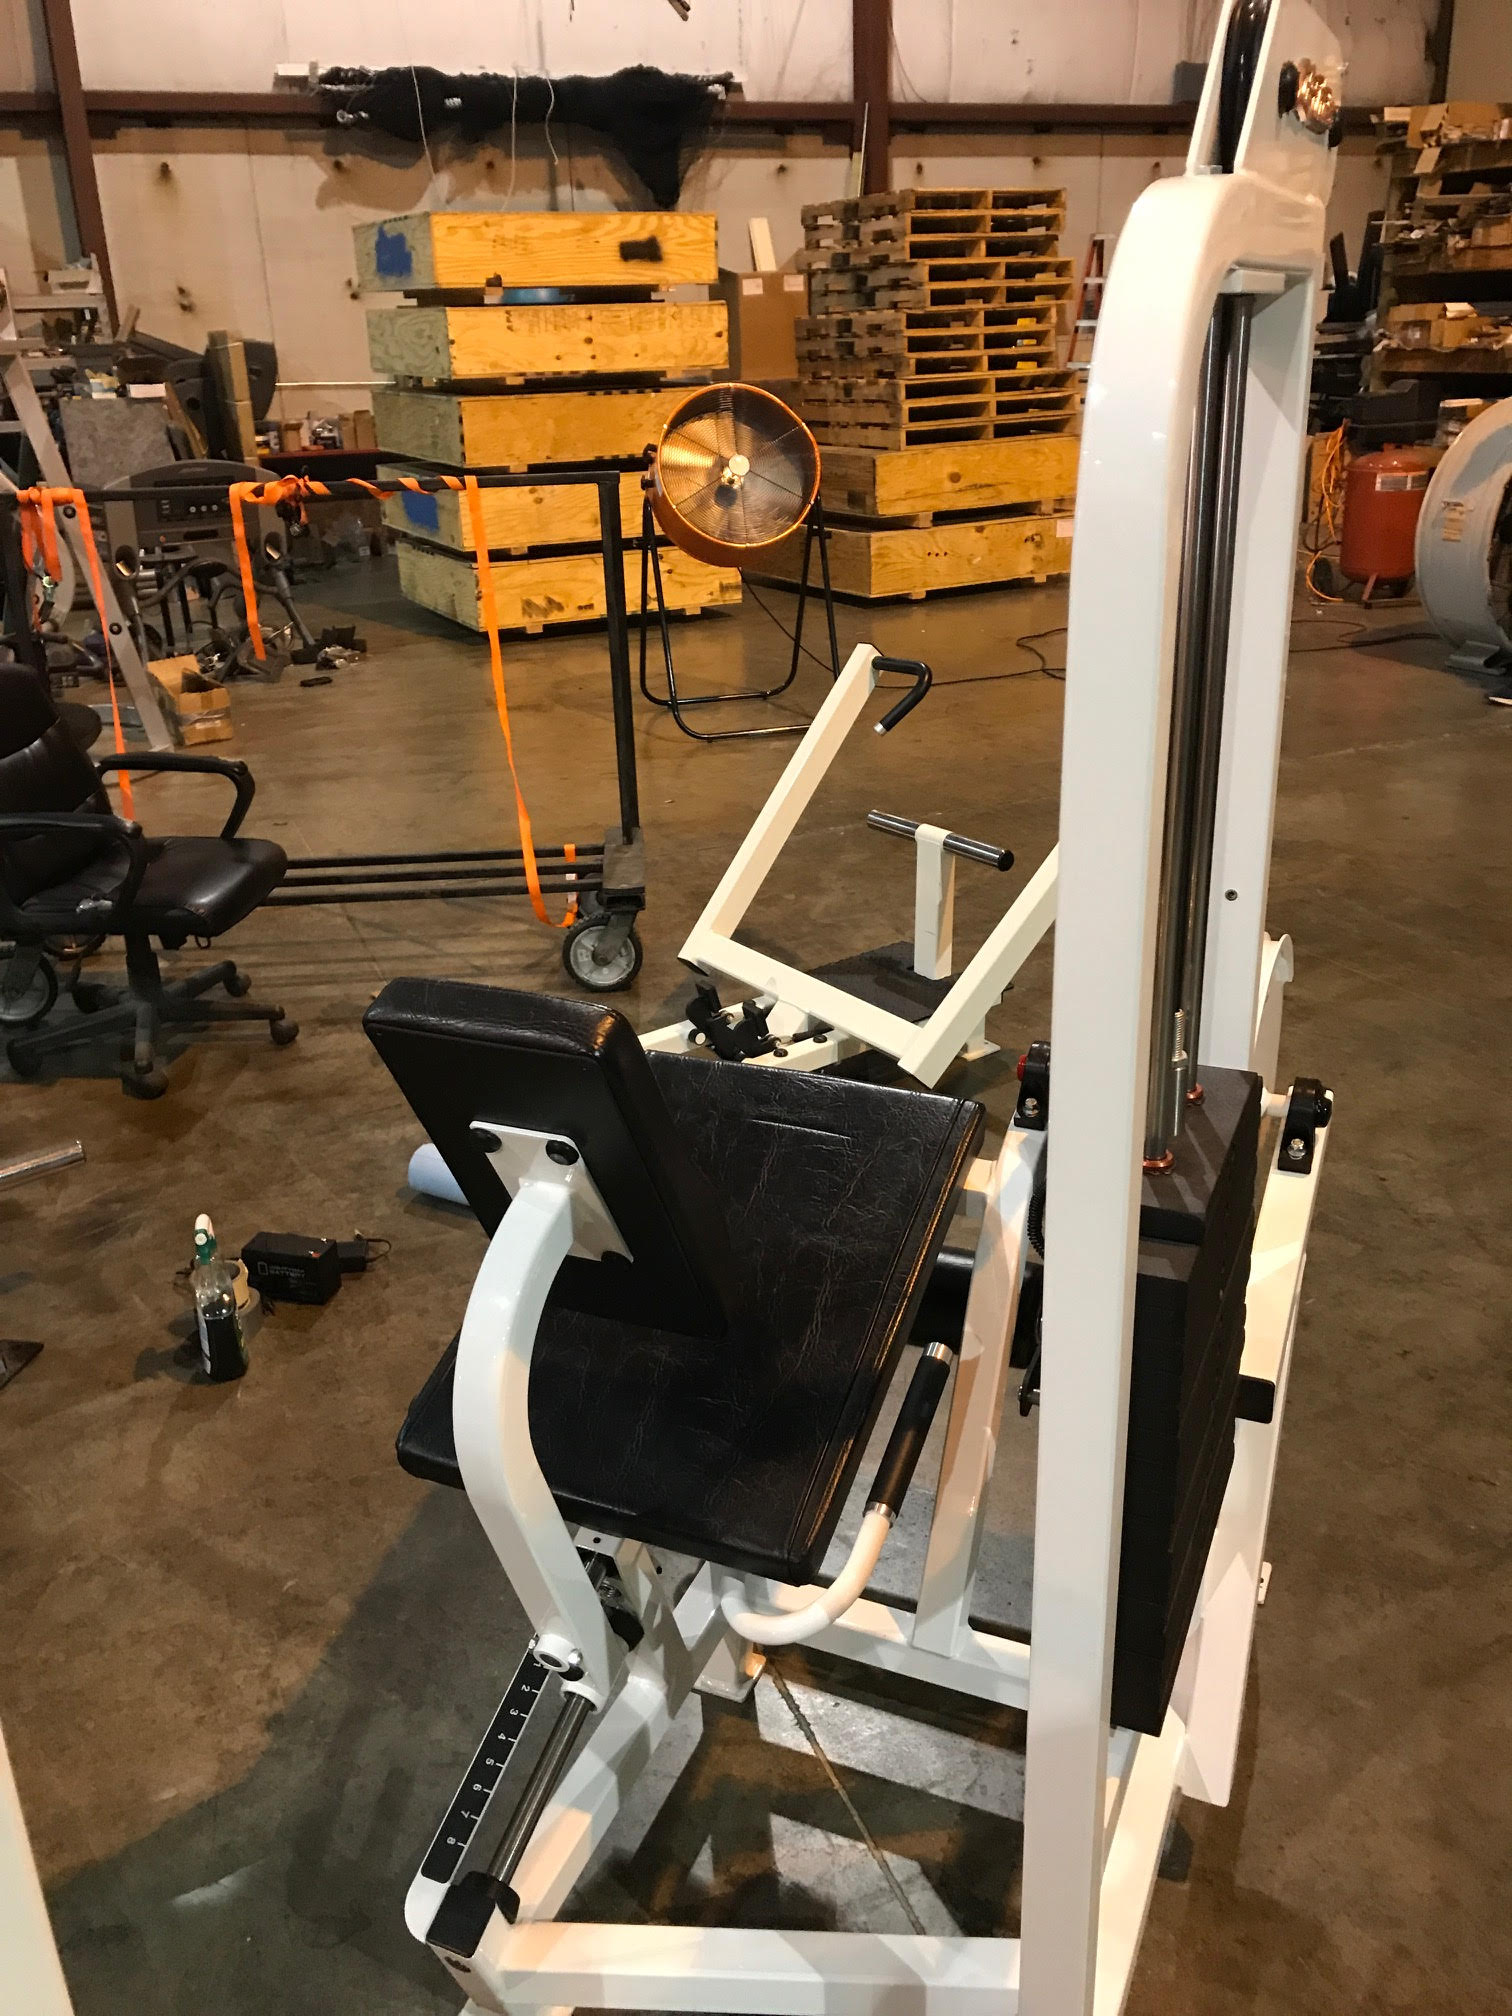 Midwest Used Fitness Equipment :: Life Fitness Pro 1 Leg